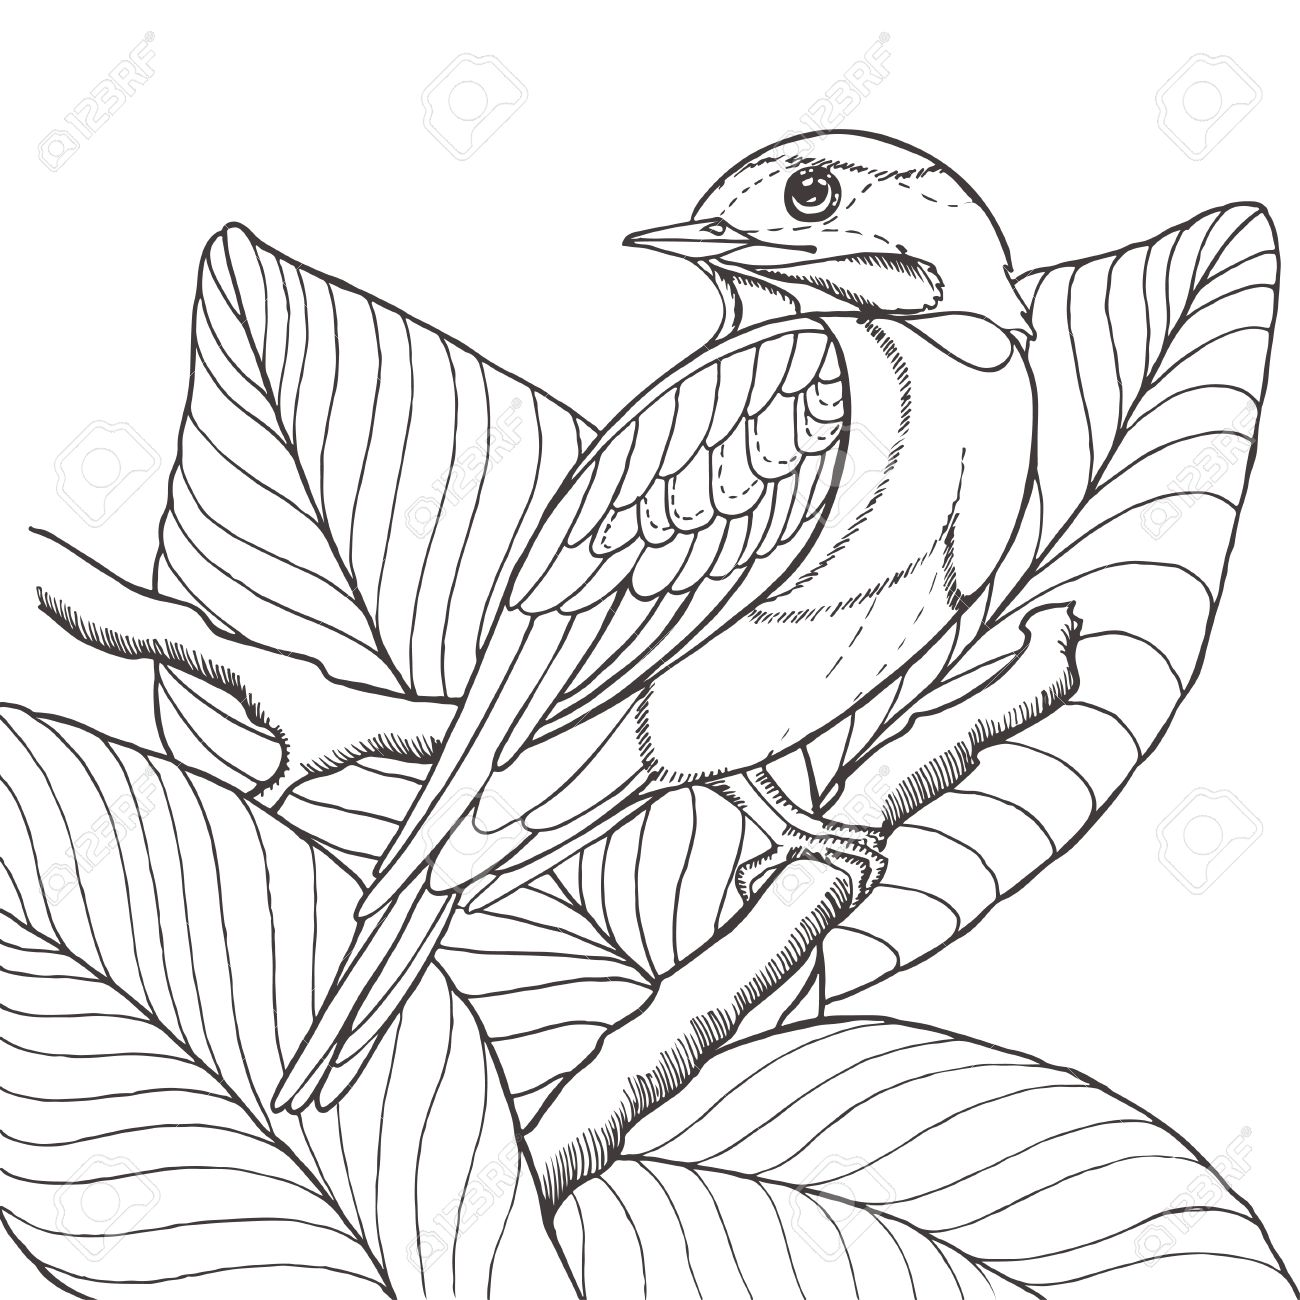 1300x1300 Sketch Of Tropical Bird Sitting On Branch In Leaves. Imitation